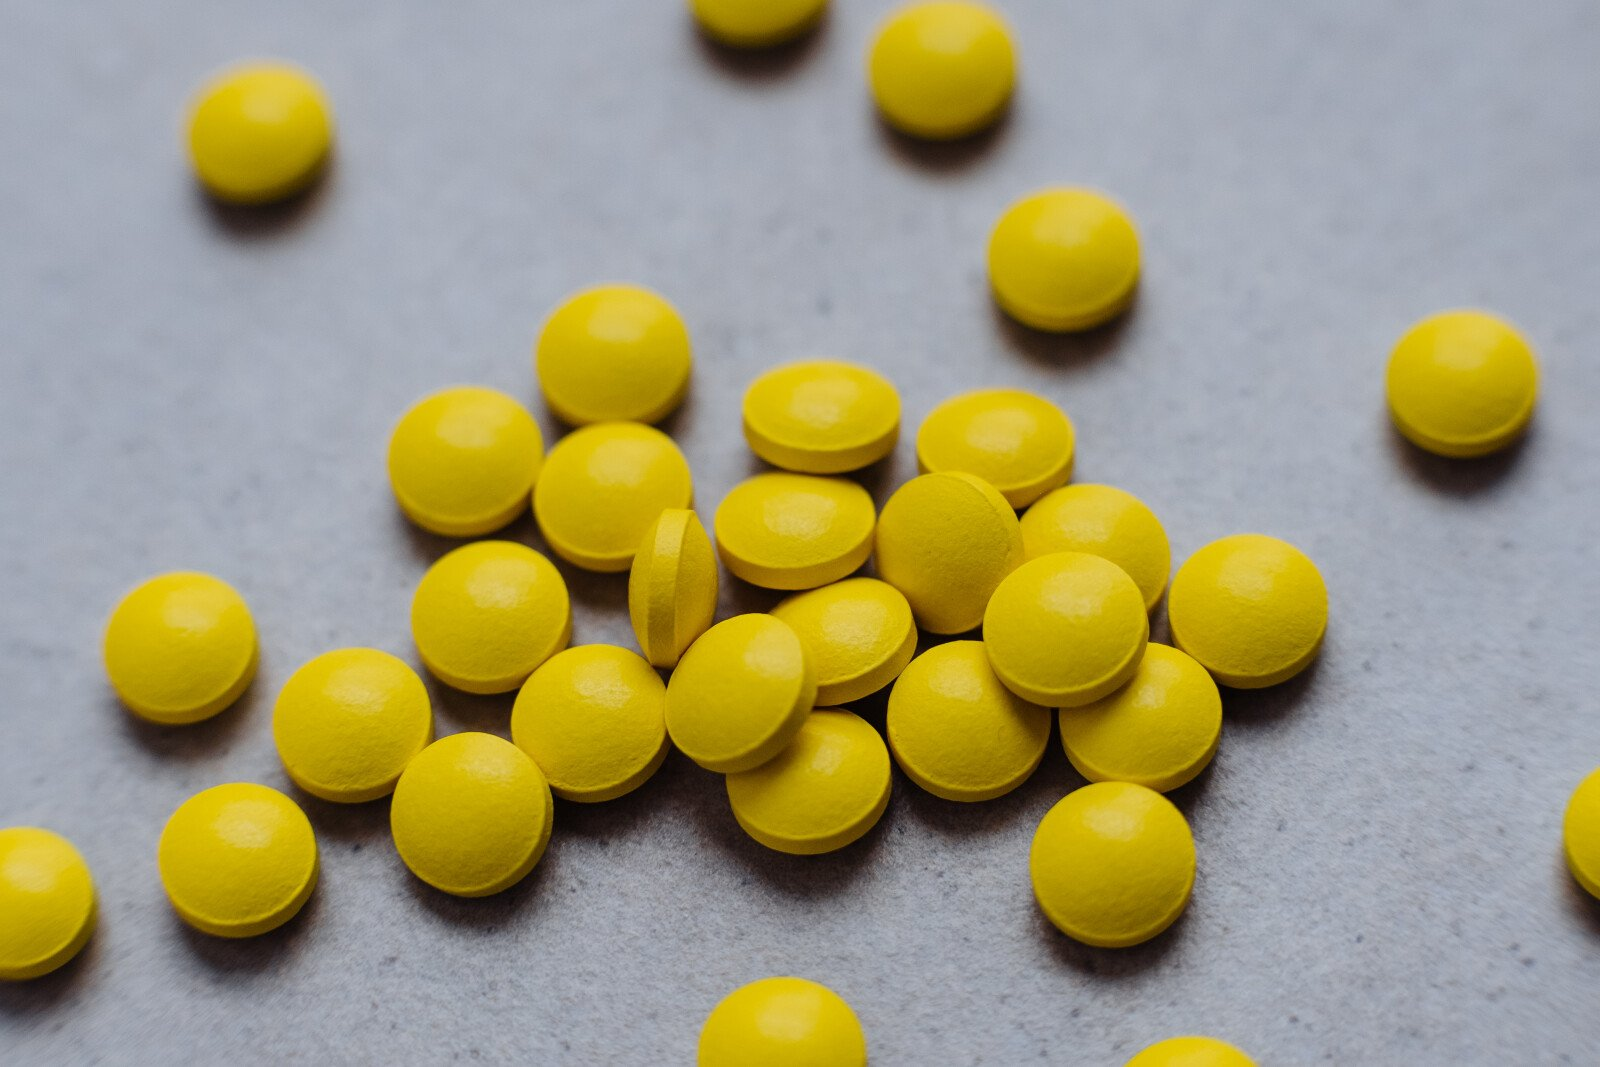 The Nervous System: Image of pills scattered on a surface